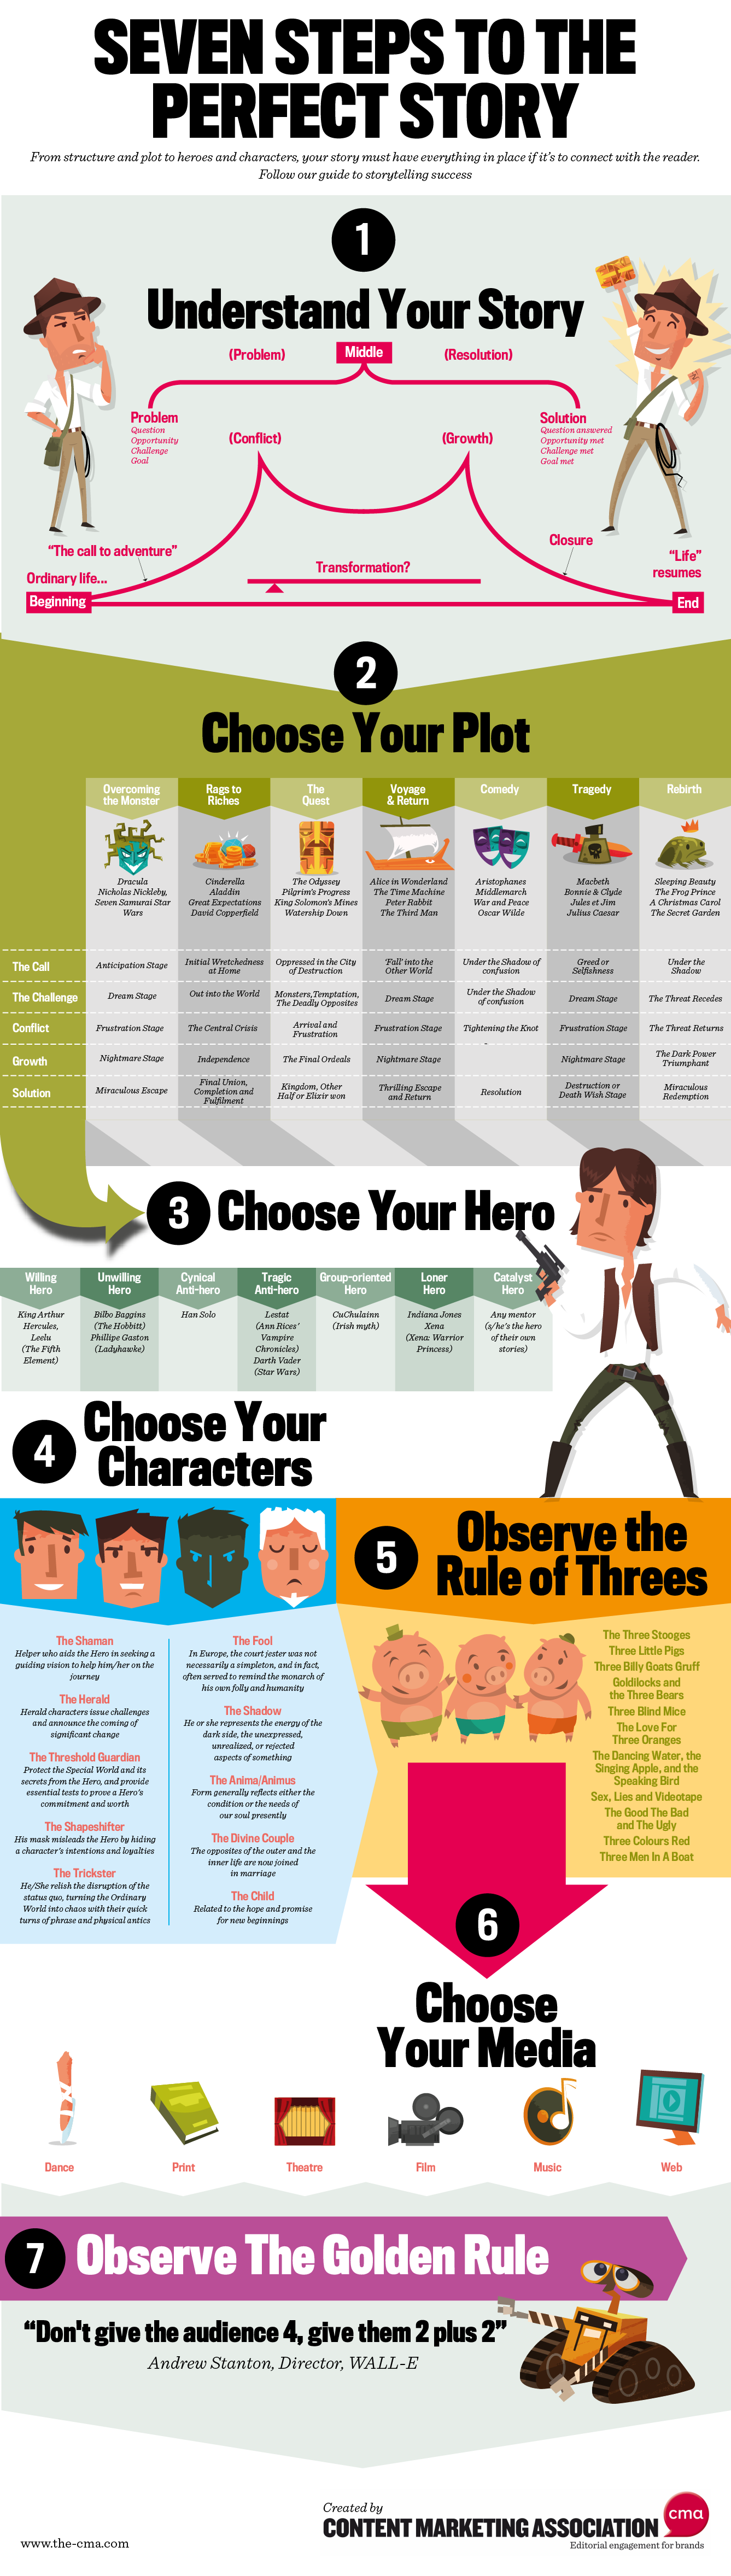 seven-steps-to-the-perfect-story-infographic